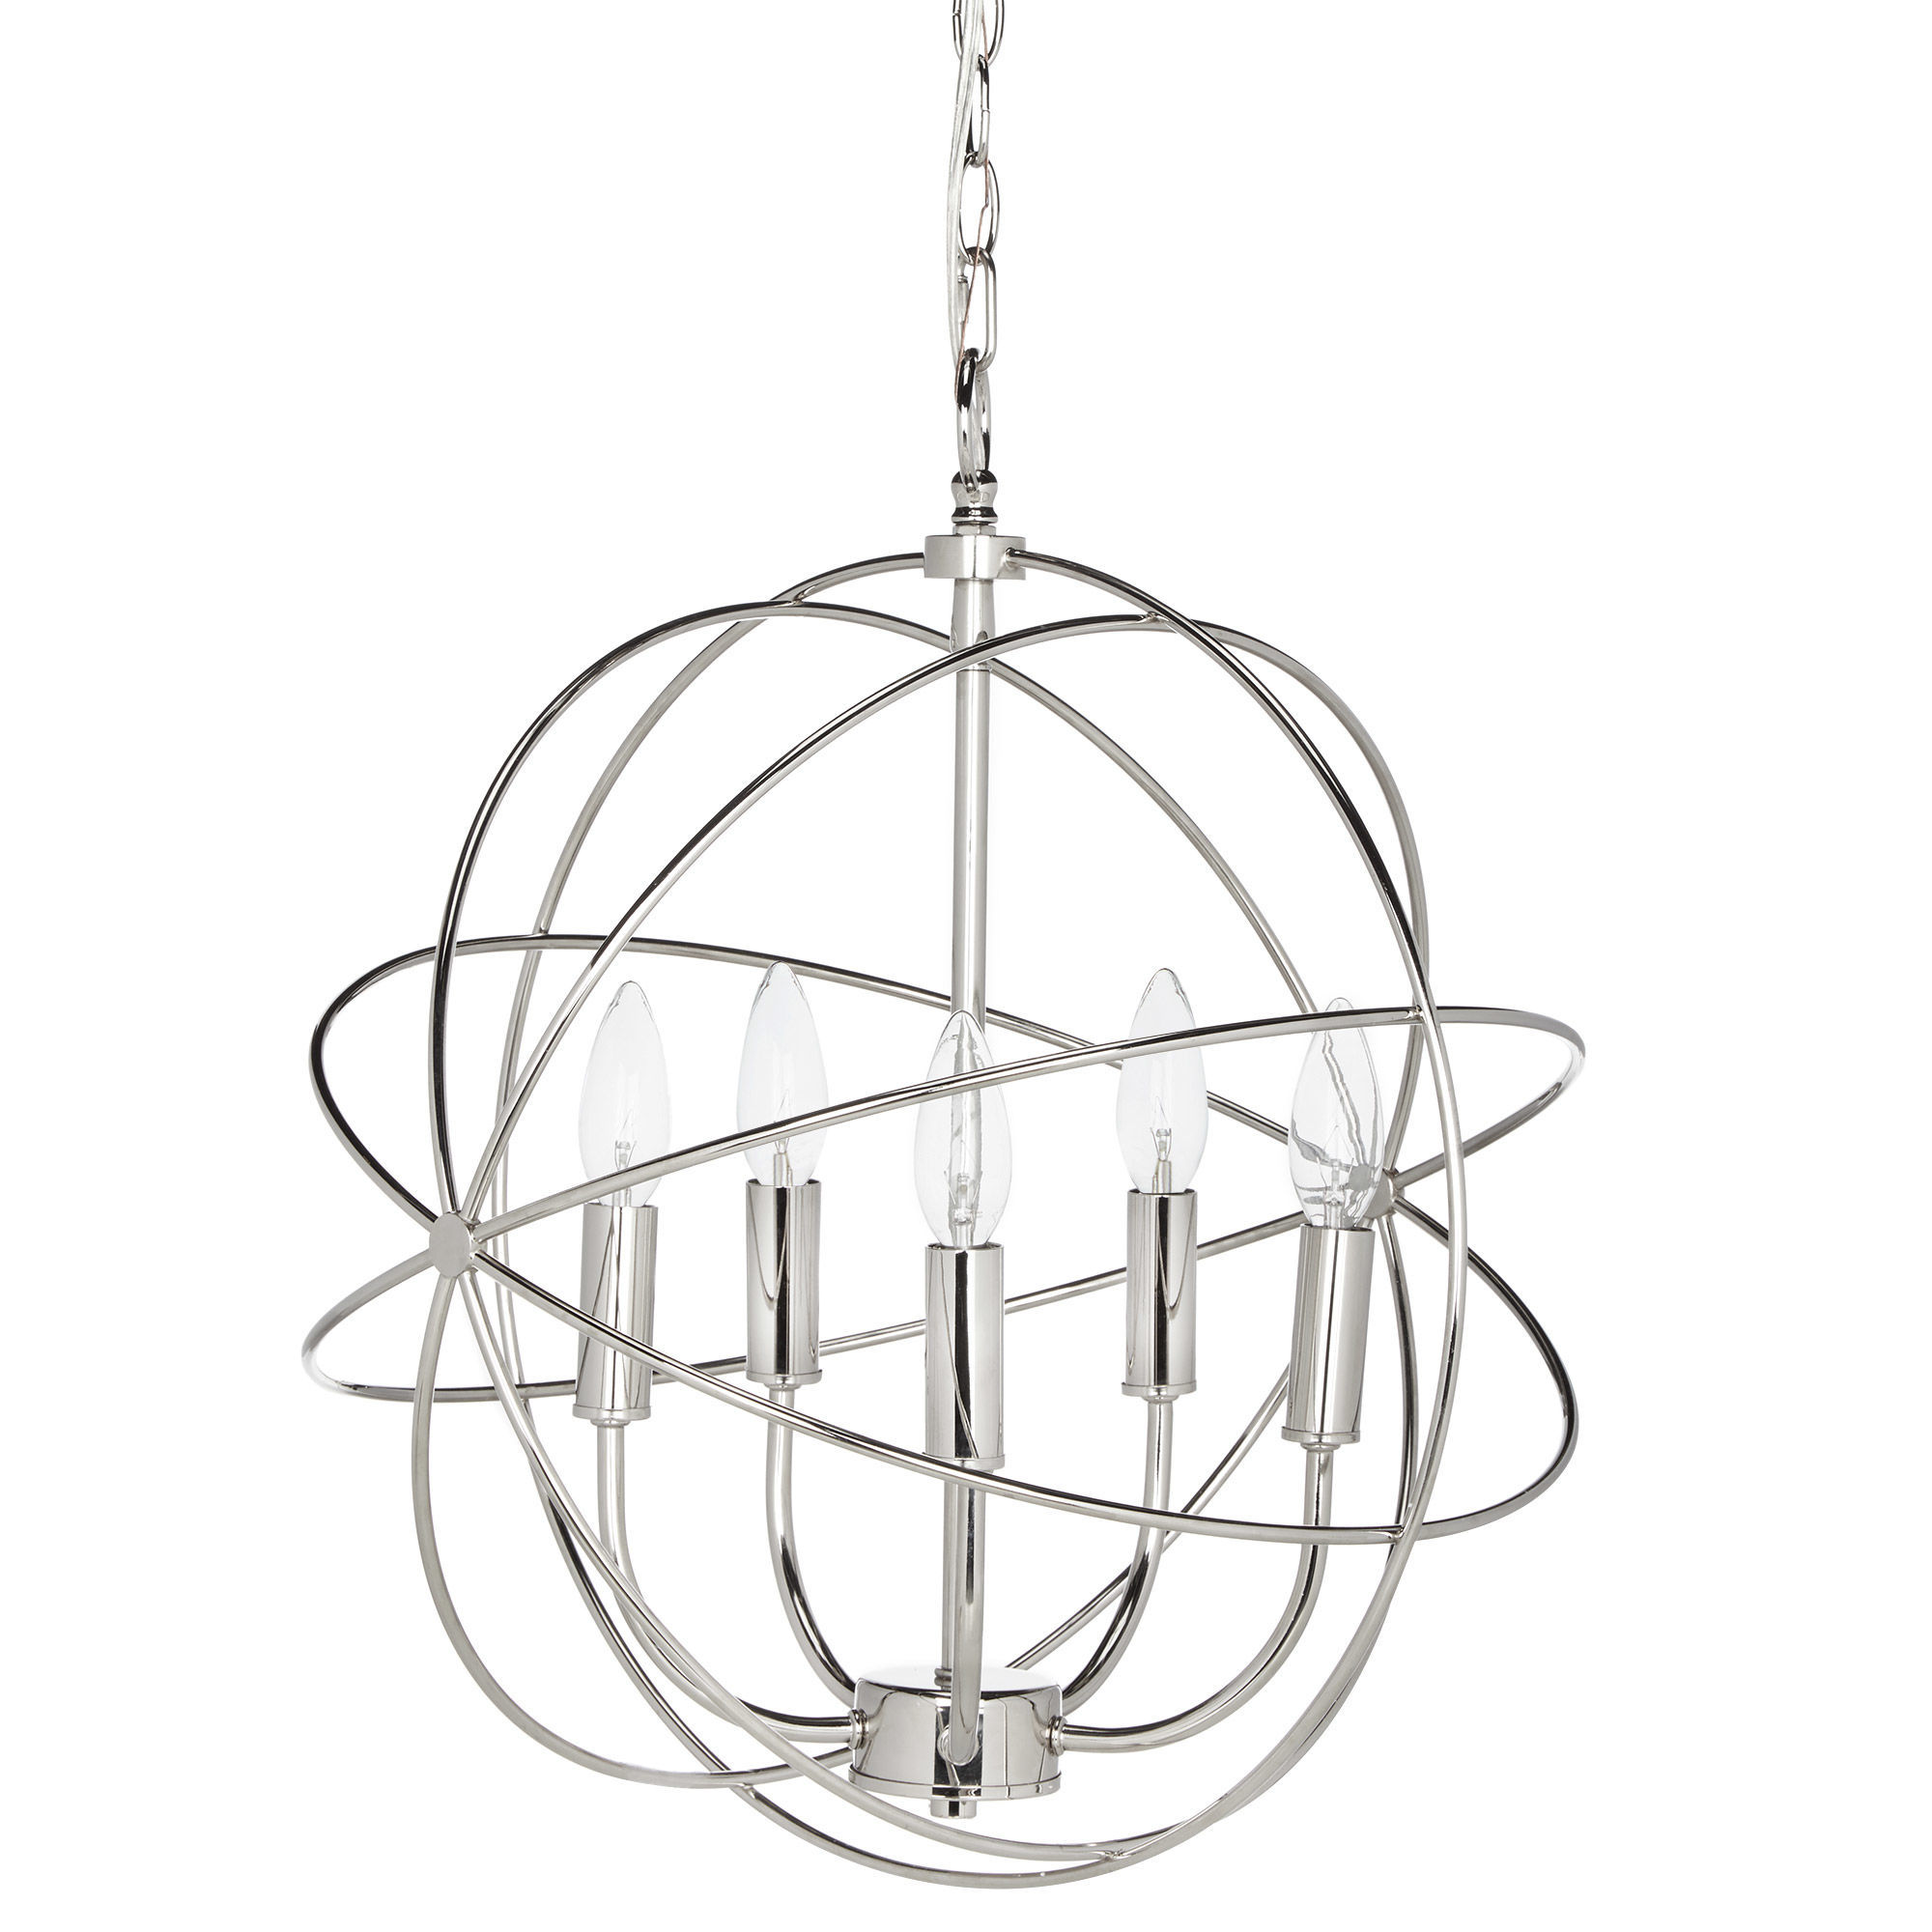 2000x2000 Ceiling Lamps For All Rooms